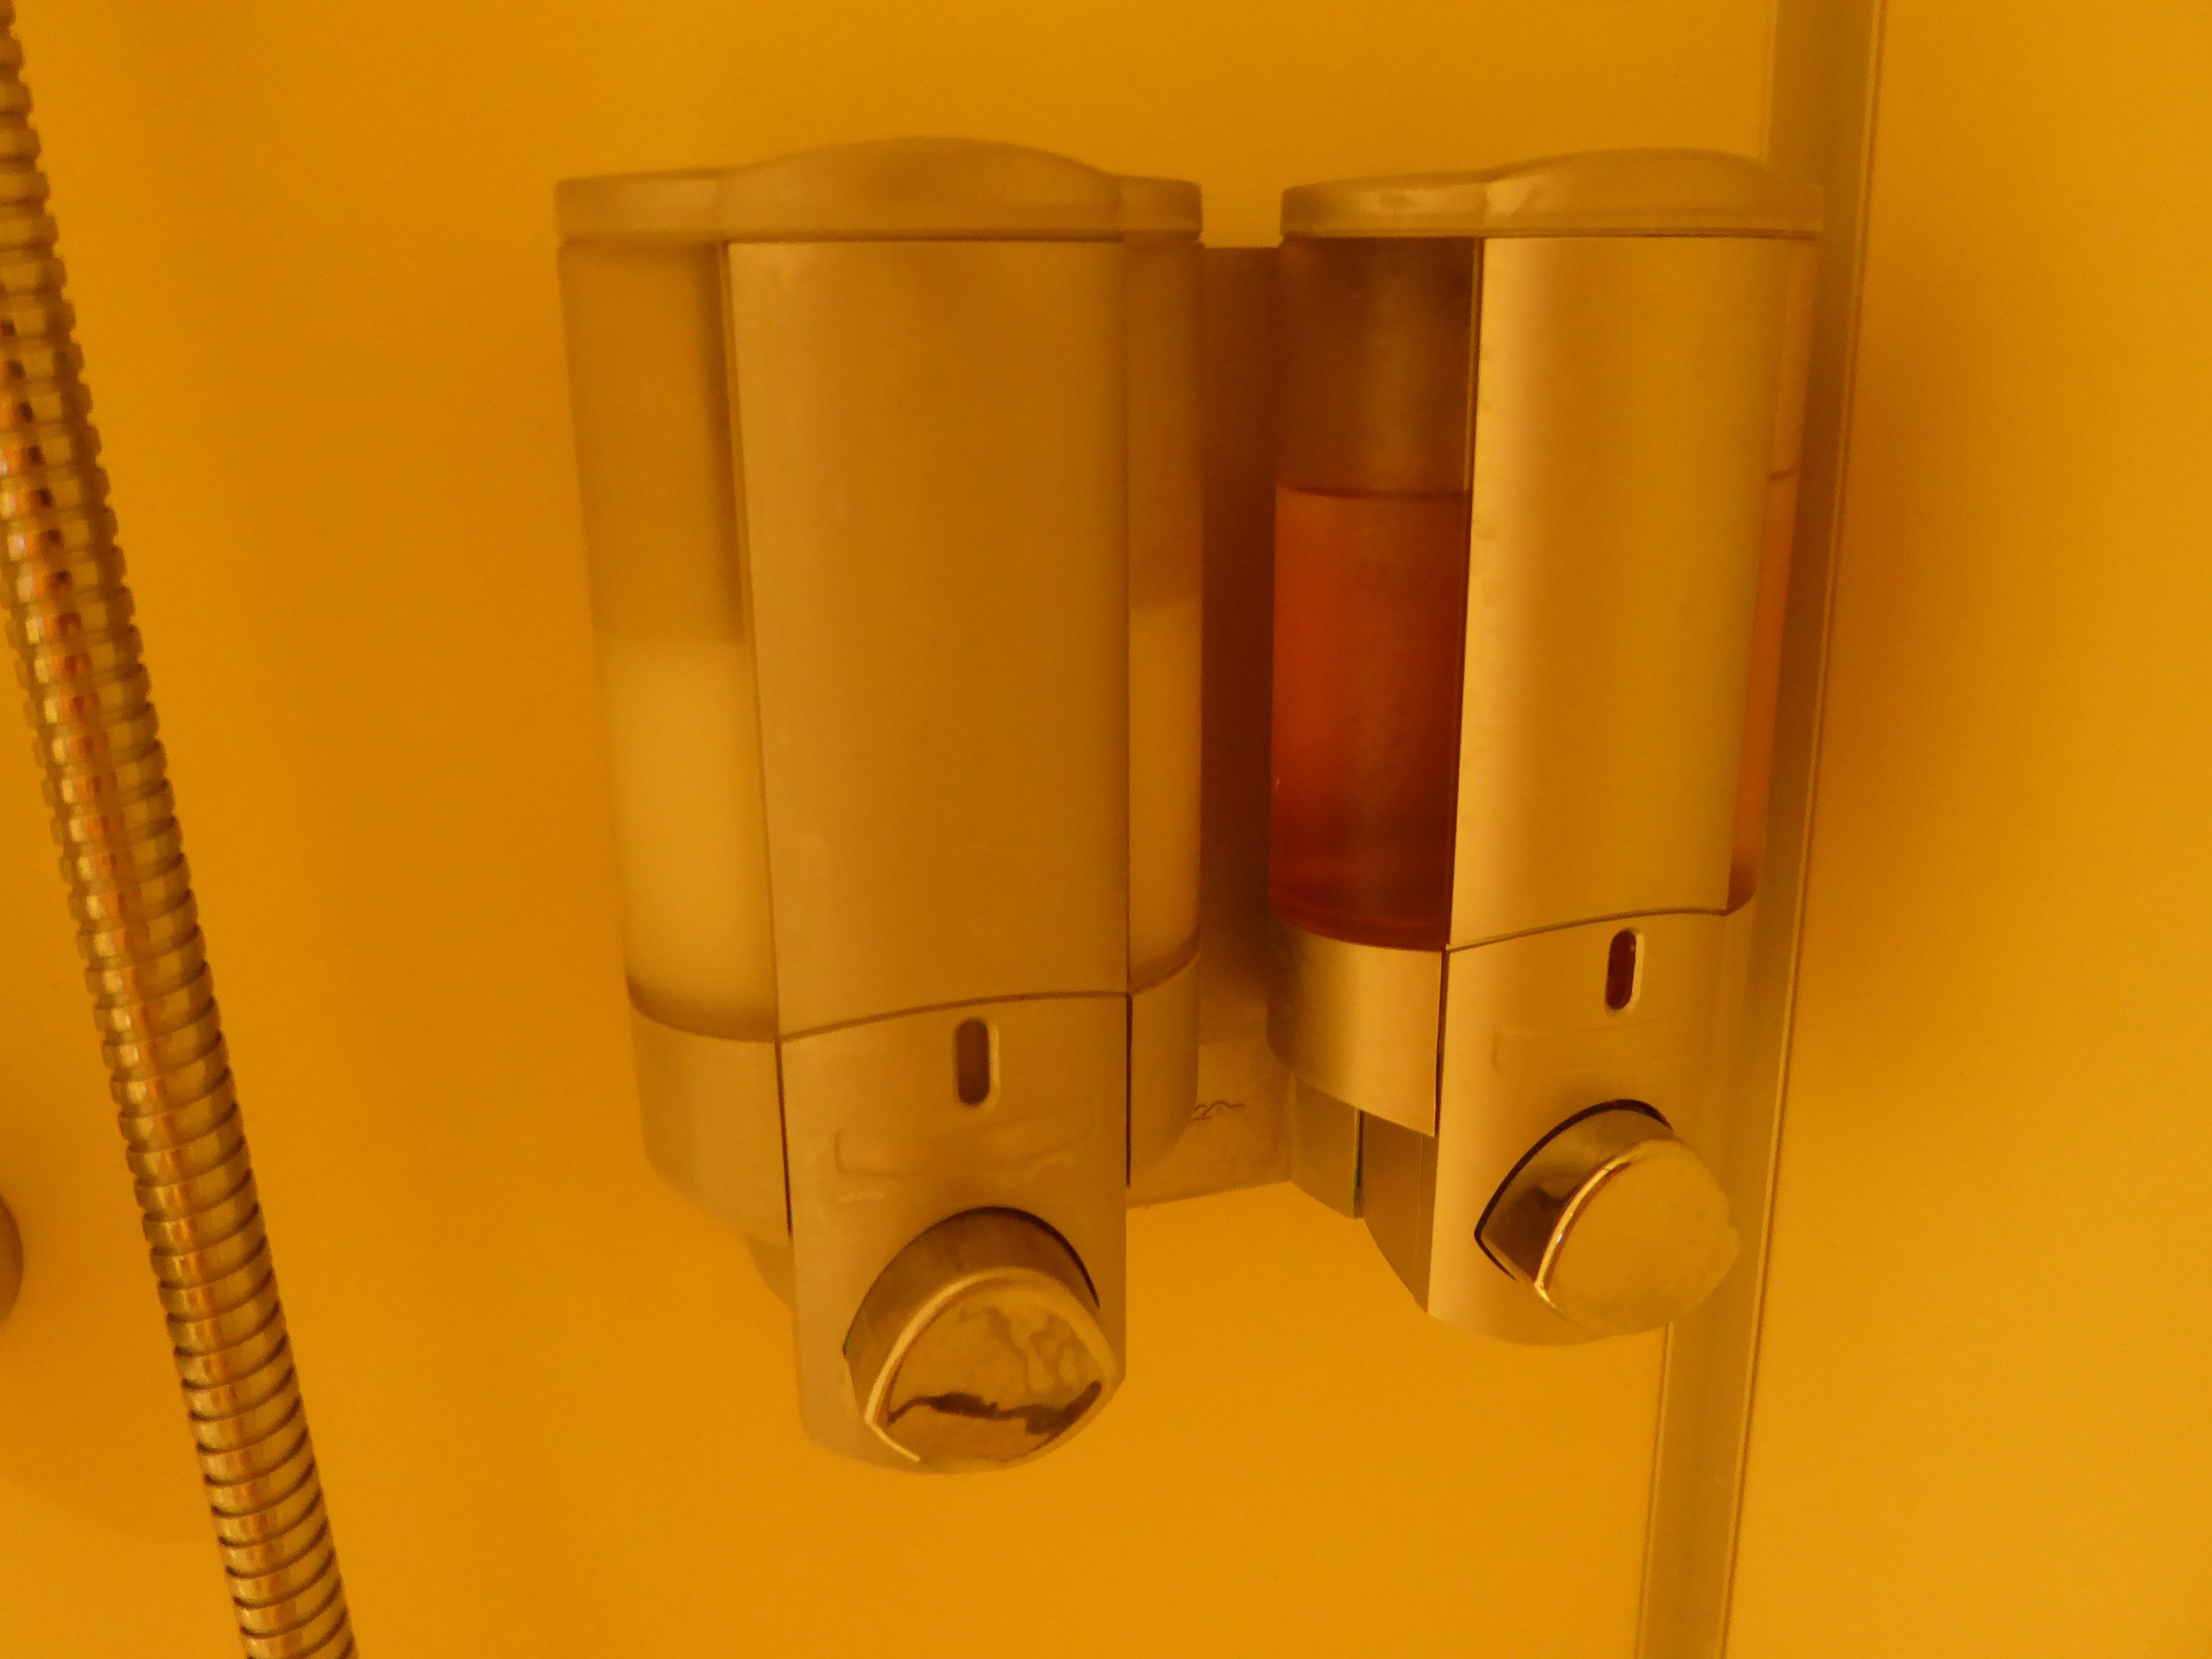 All Oceanview and Interior Stateroom bathrooms come with environmentally friendly soap and shampoo dispensers.